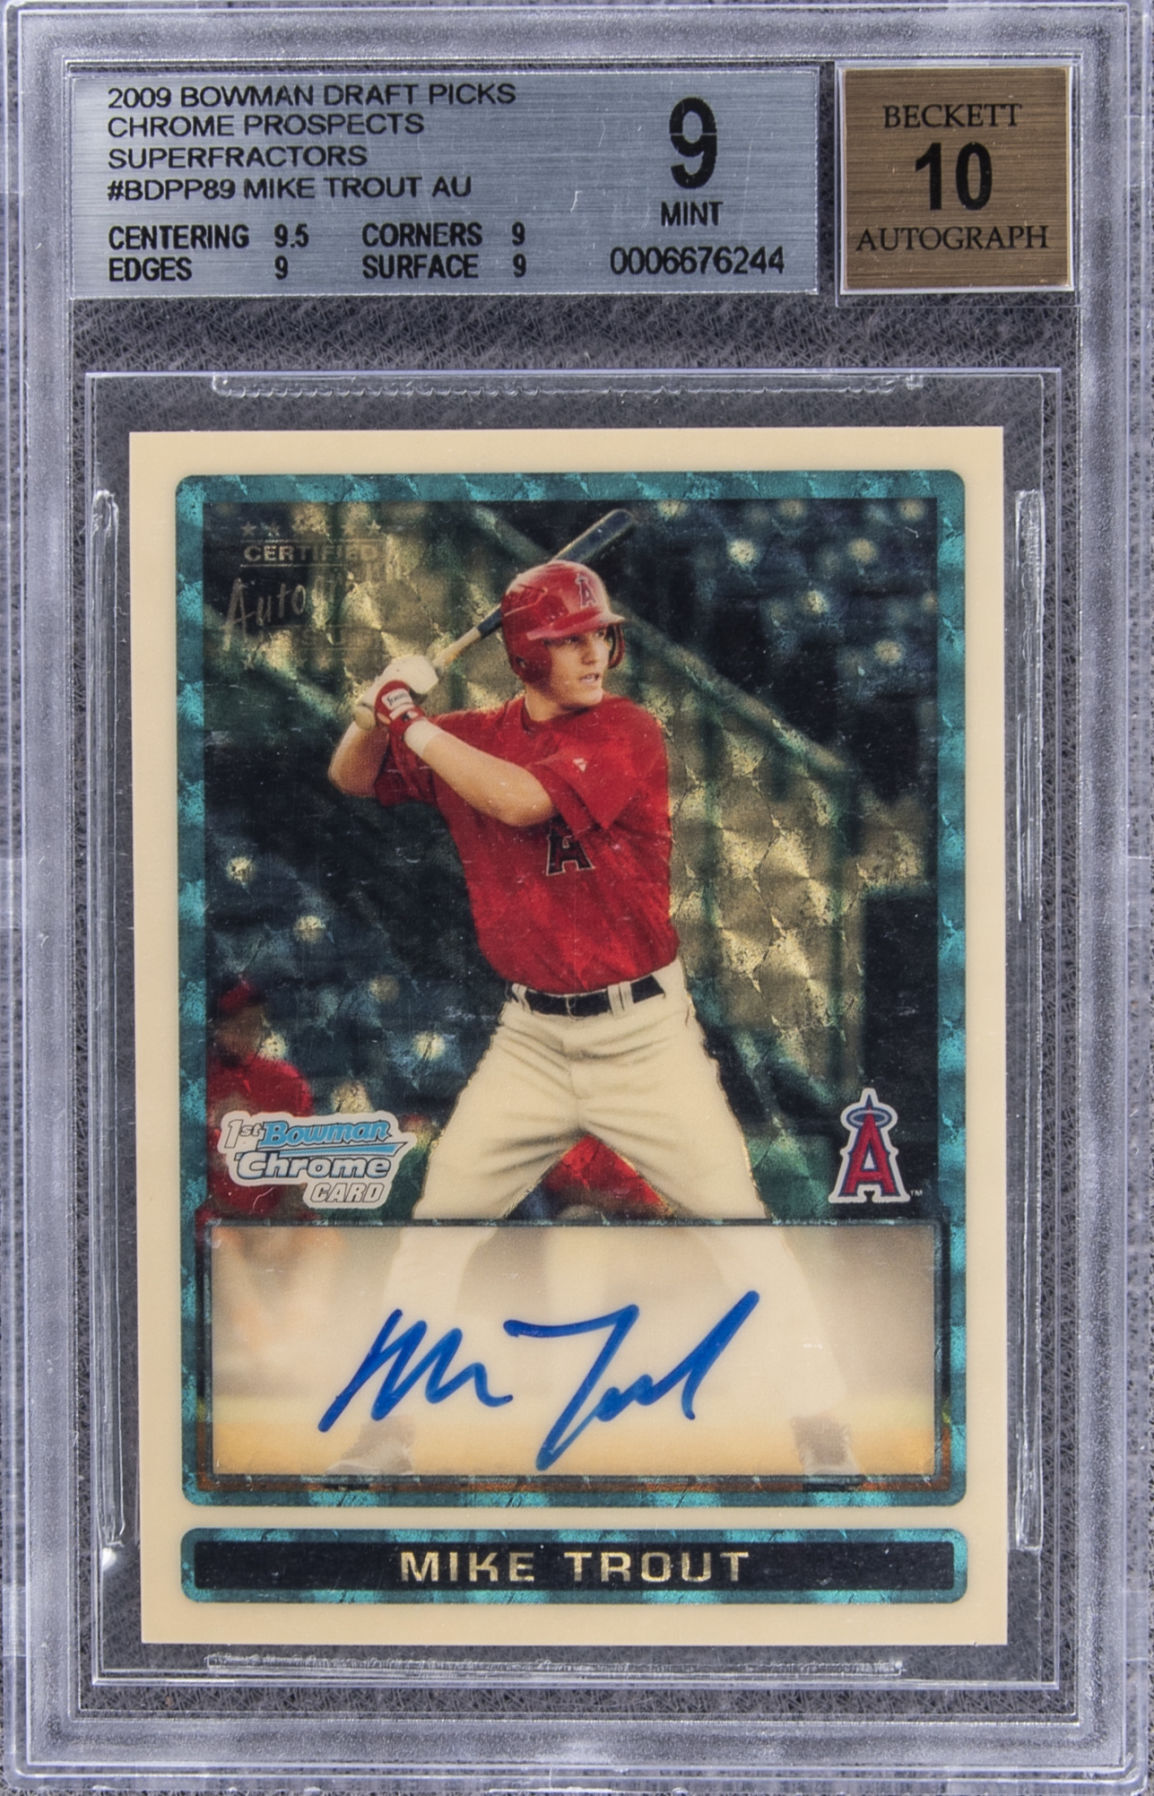 2009 Mike Trout rookie card.jpg